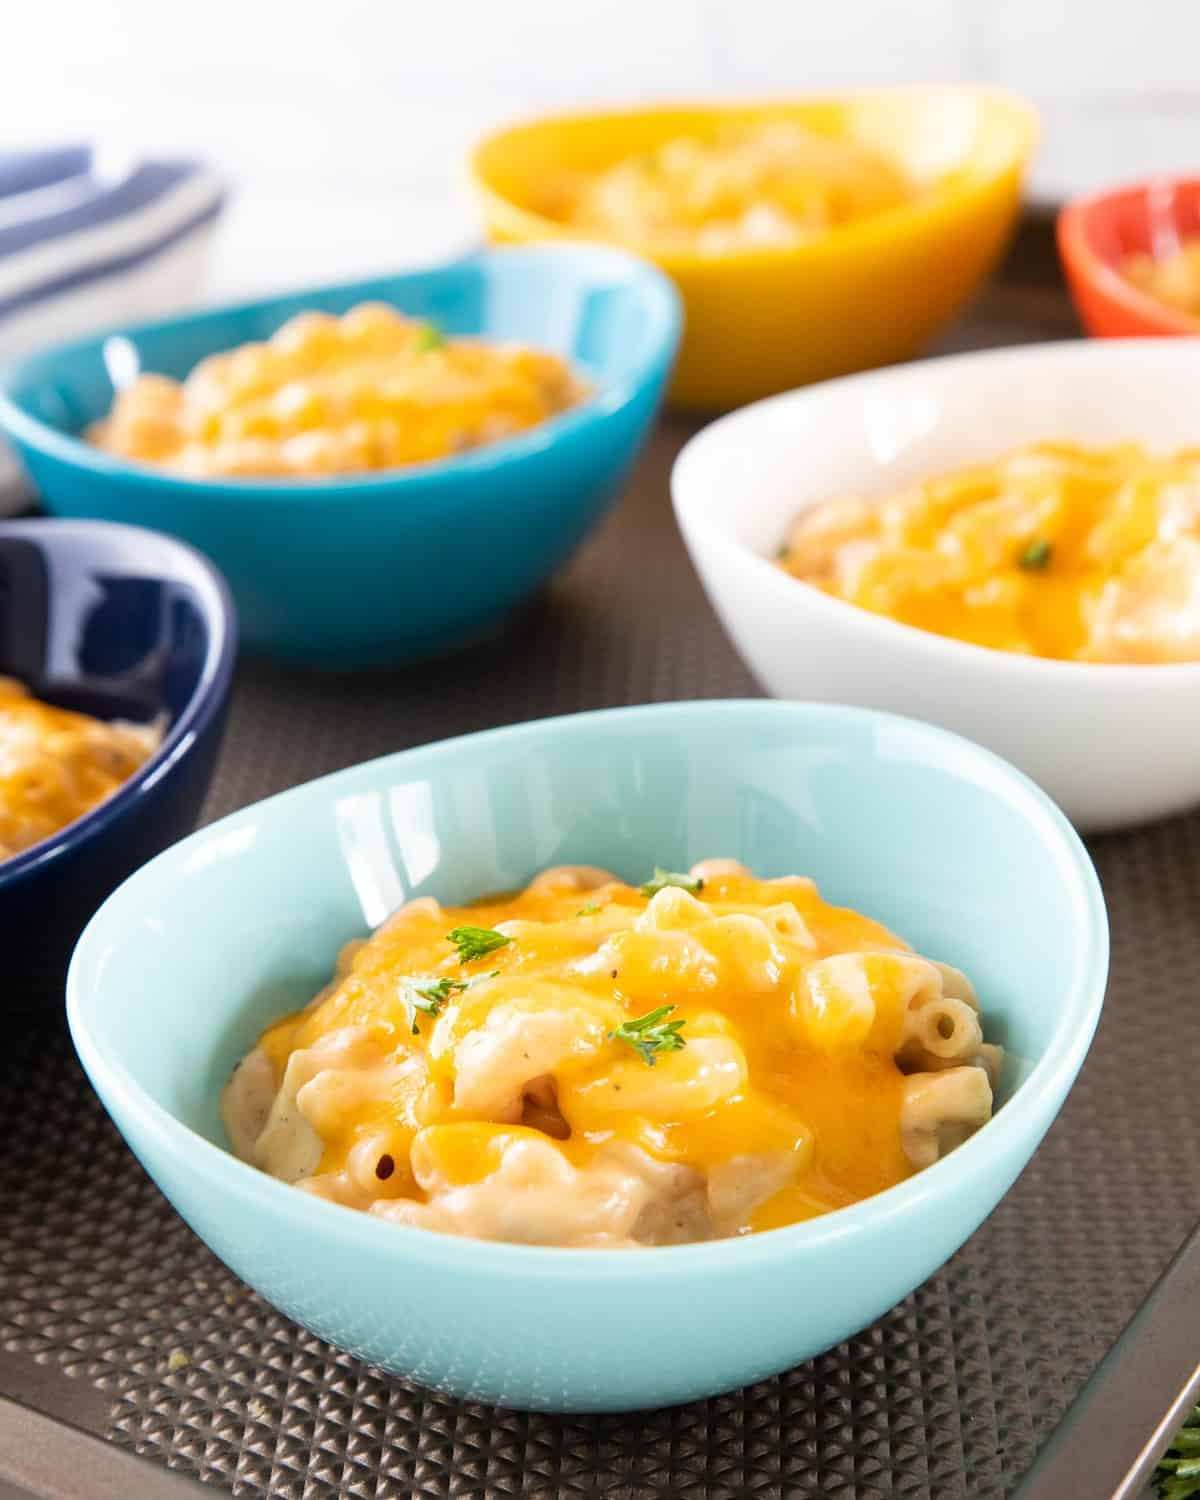 Six bowls of low sodium Mac and cheese.